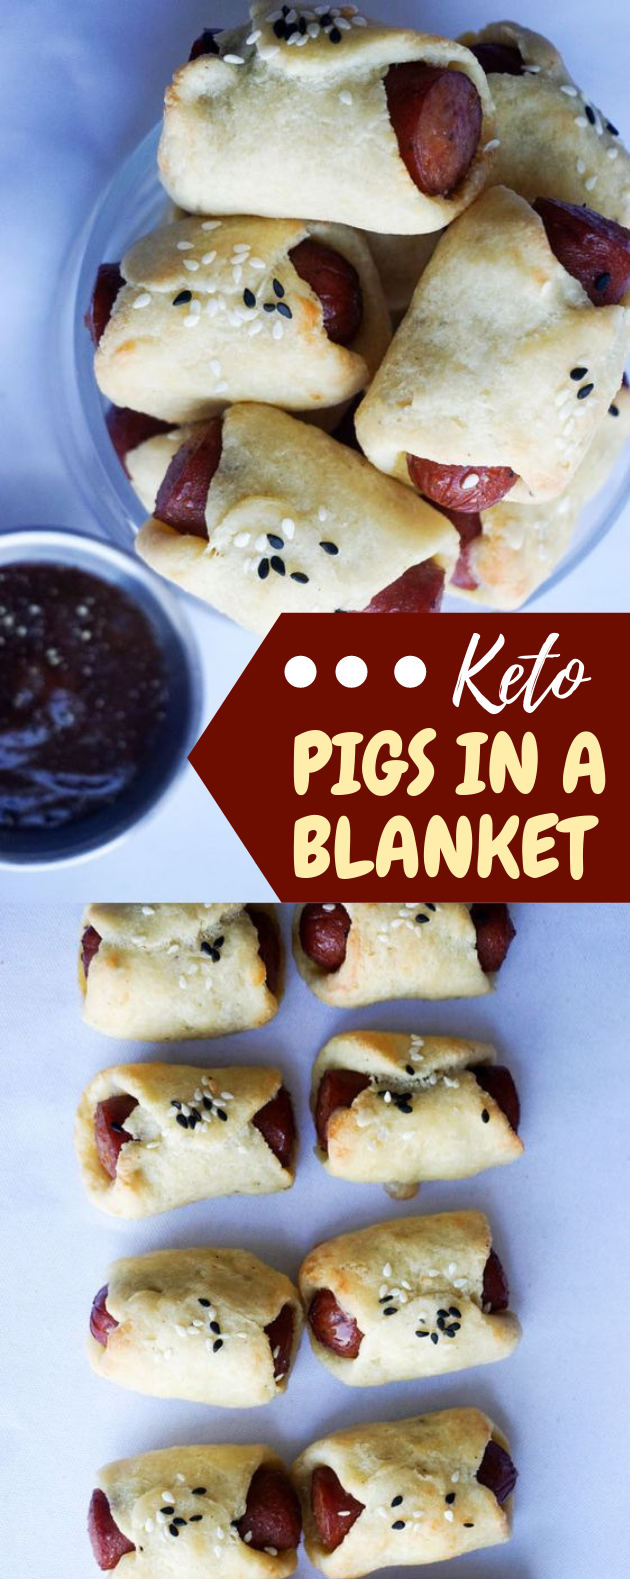 Keto Pigs In A Blanket | Make Snack Time Fun Again! #Ketogenic #lowcarb